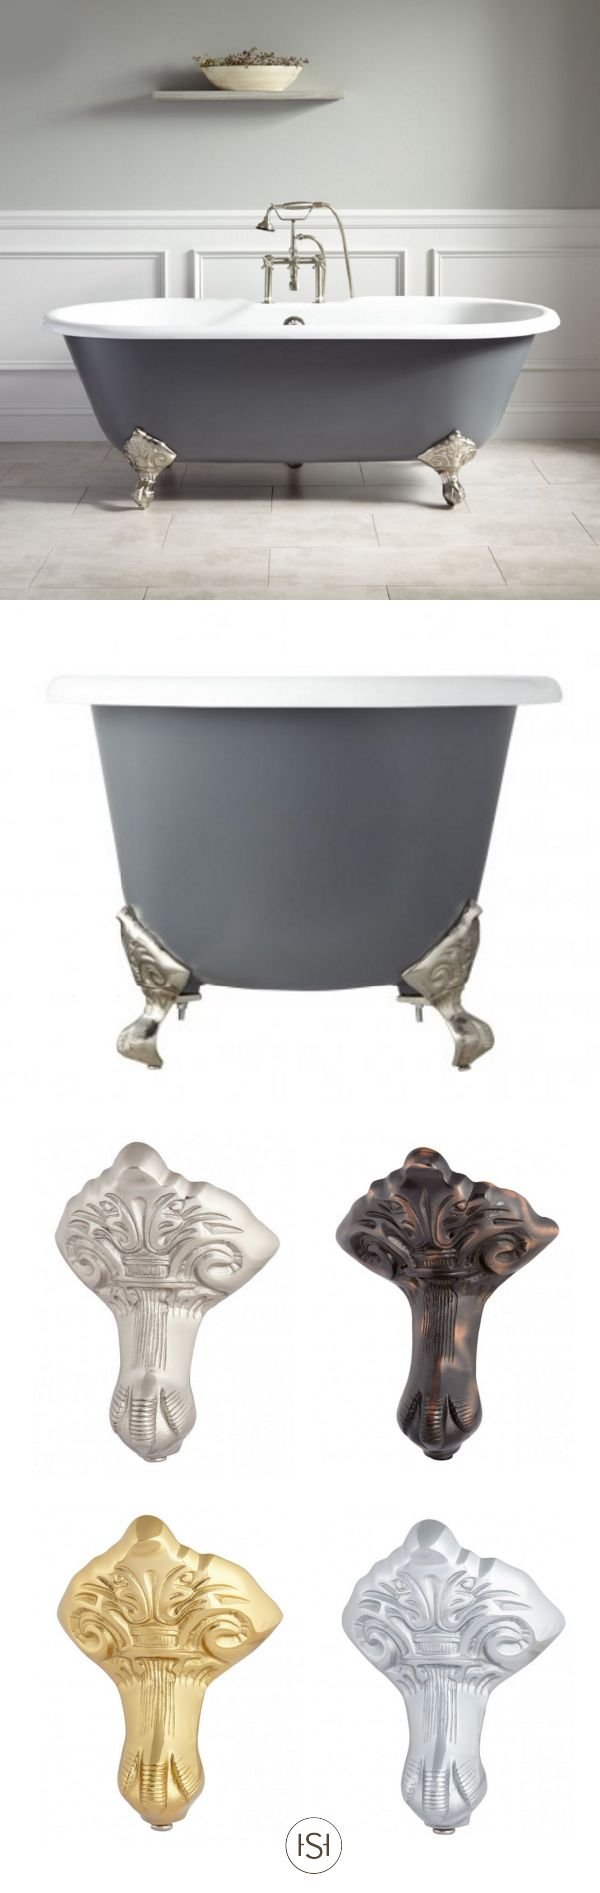 "Think of this 66"" Stanford Cast Iron Clawfoot Tub with Imperial Feet as the missing puzzle piece to your elegant bathroom makeover. With options for a customized metal finishes, you can make your space a truly unique experience."